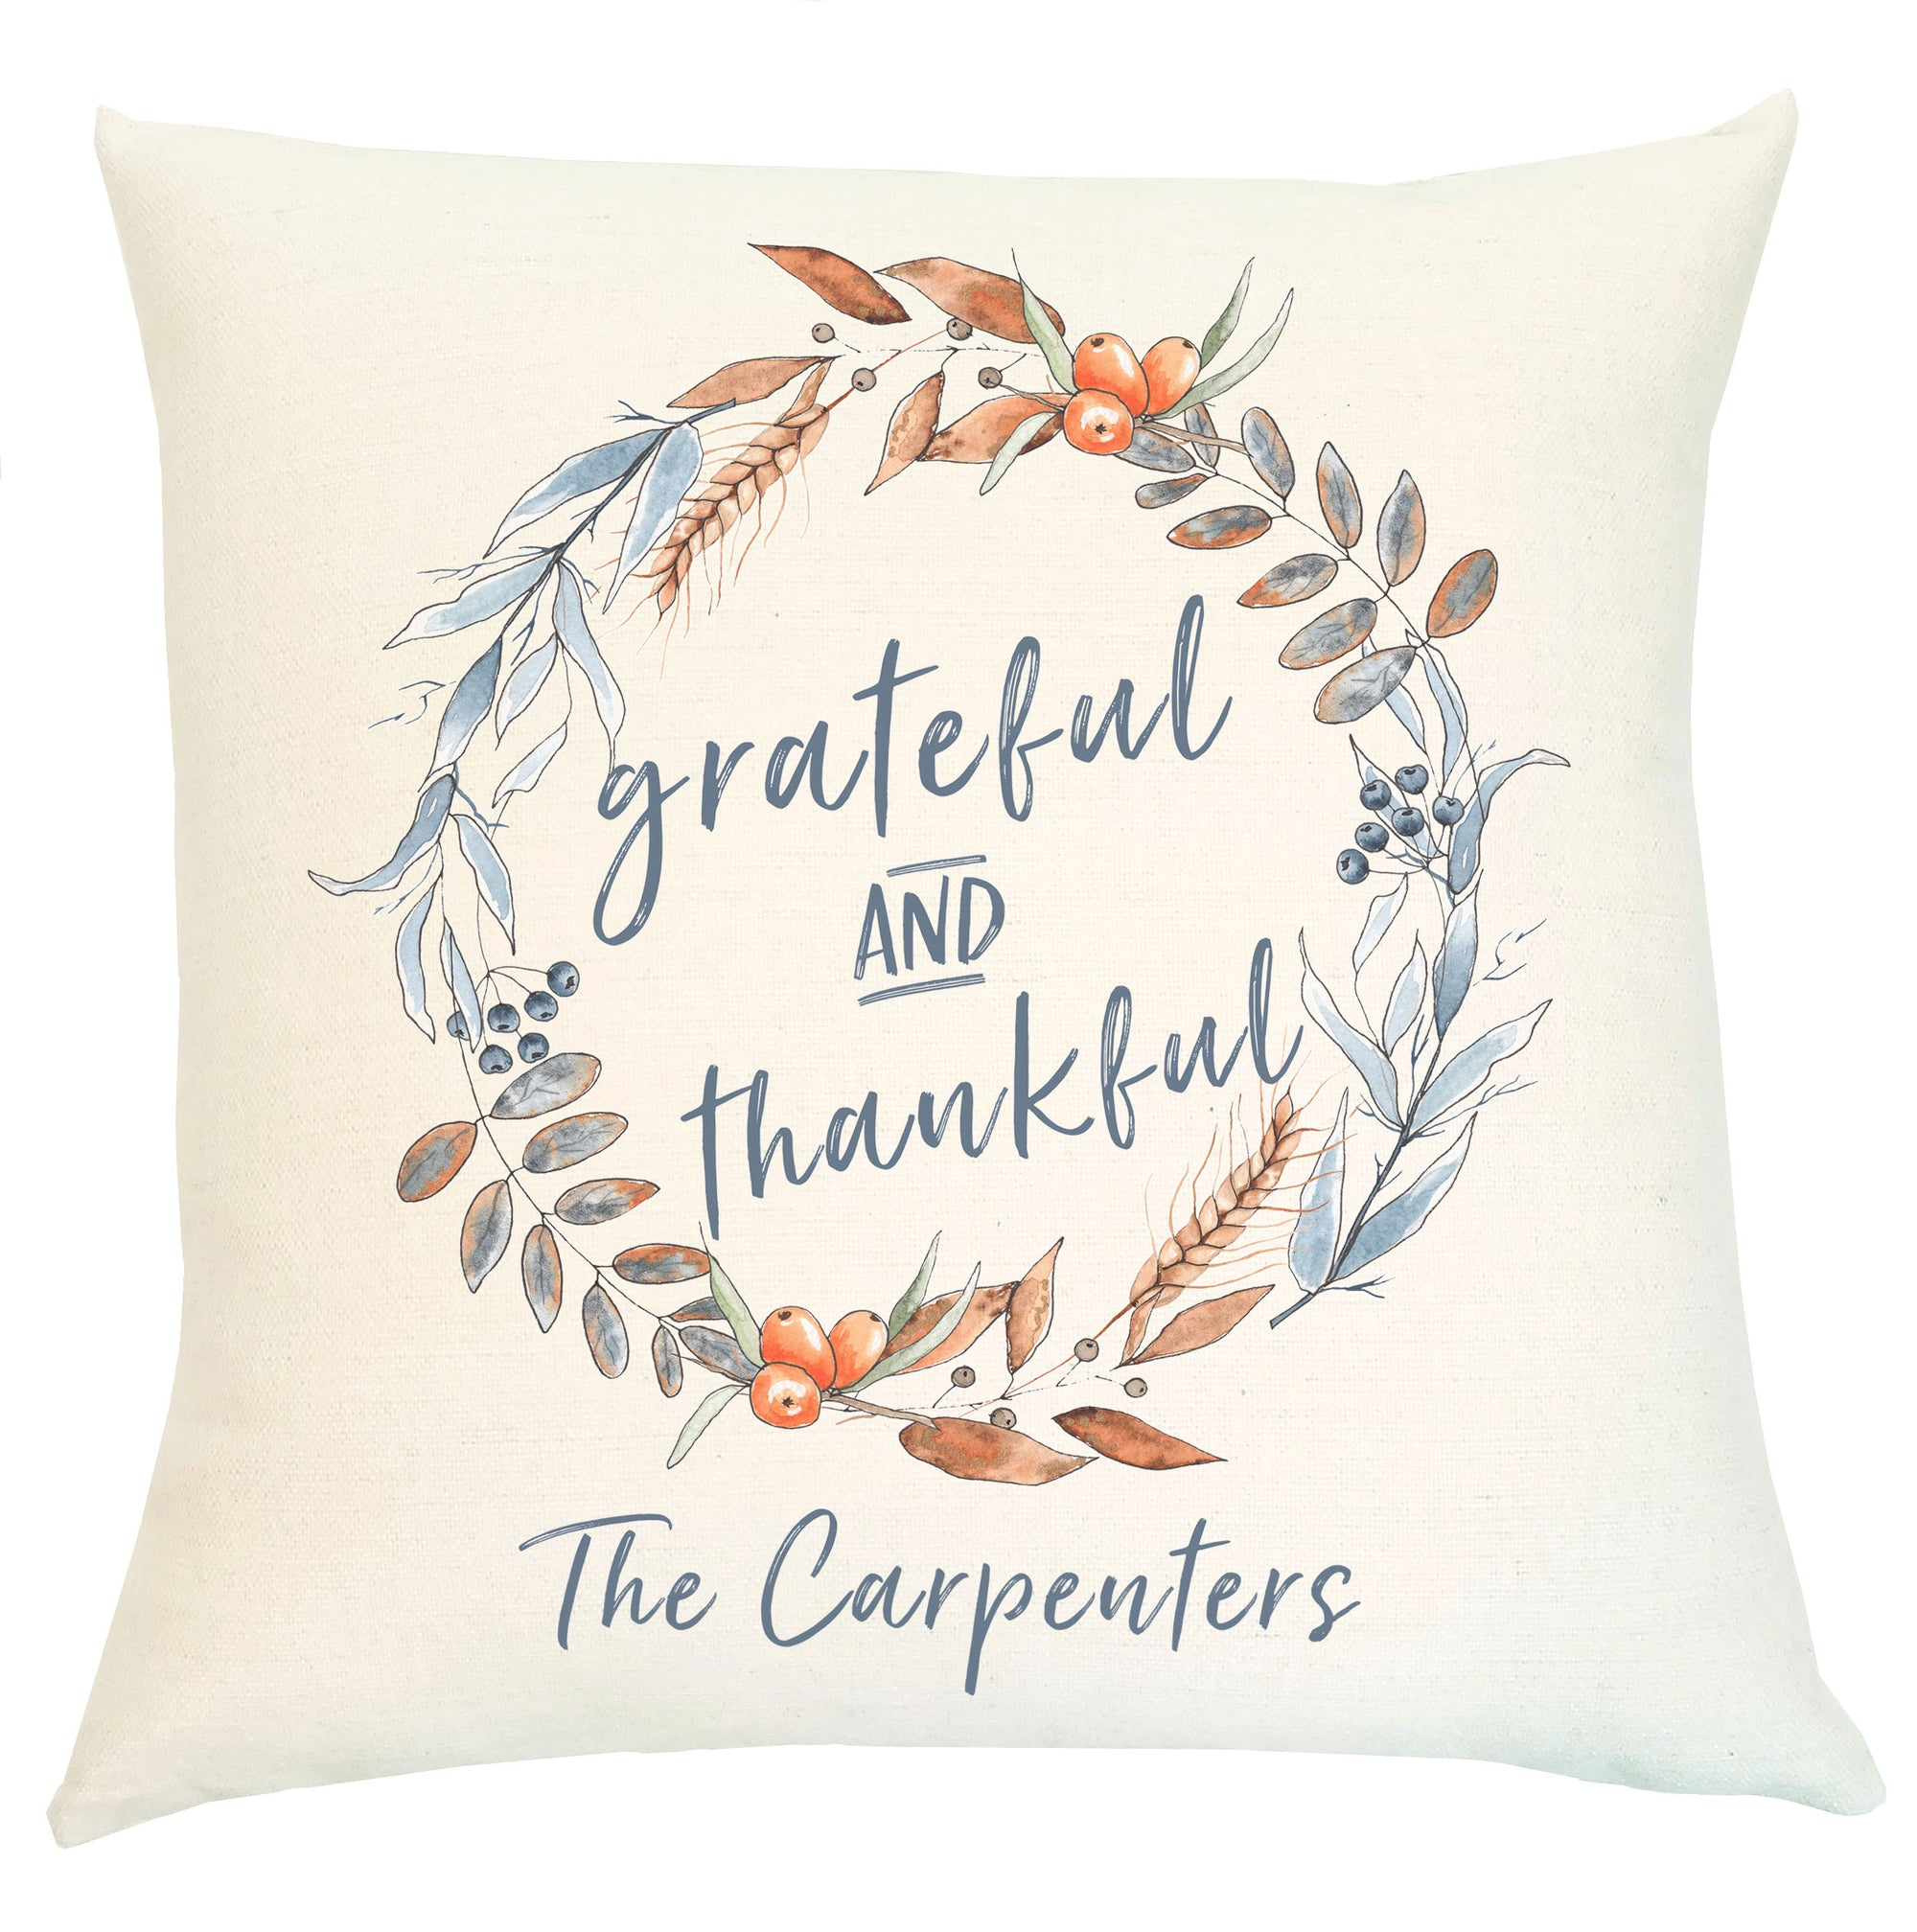 Pillow Personalized - Grateful & Thankful